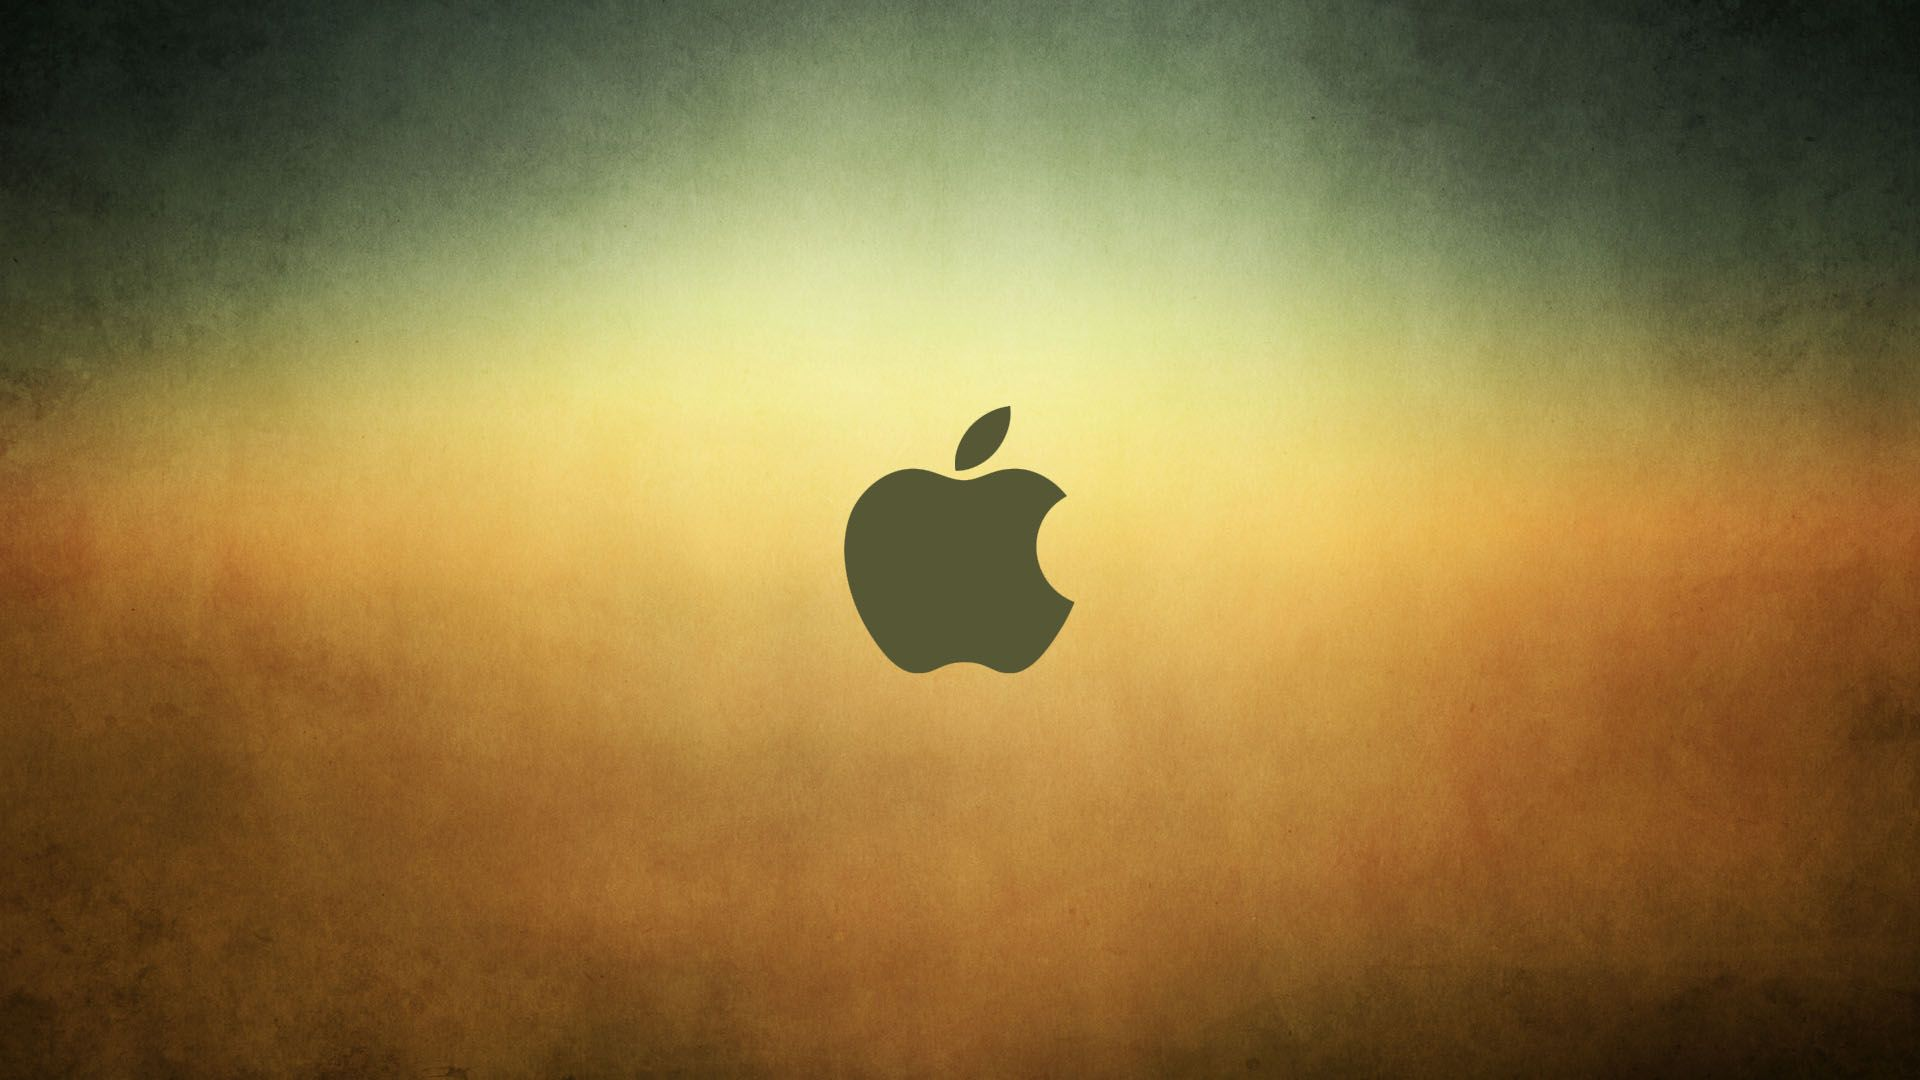 Apple Logo WallPaper HD logos apple logo